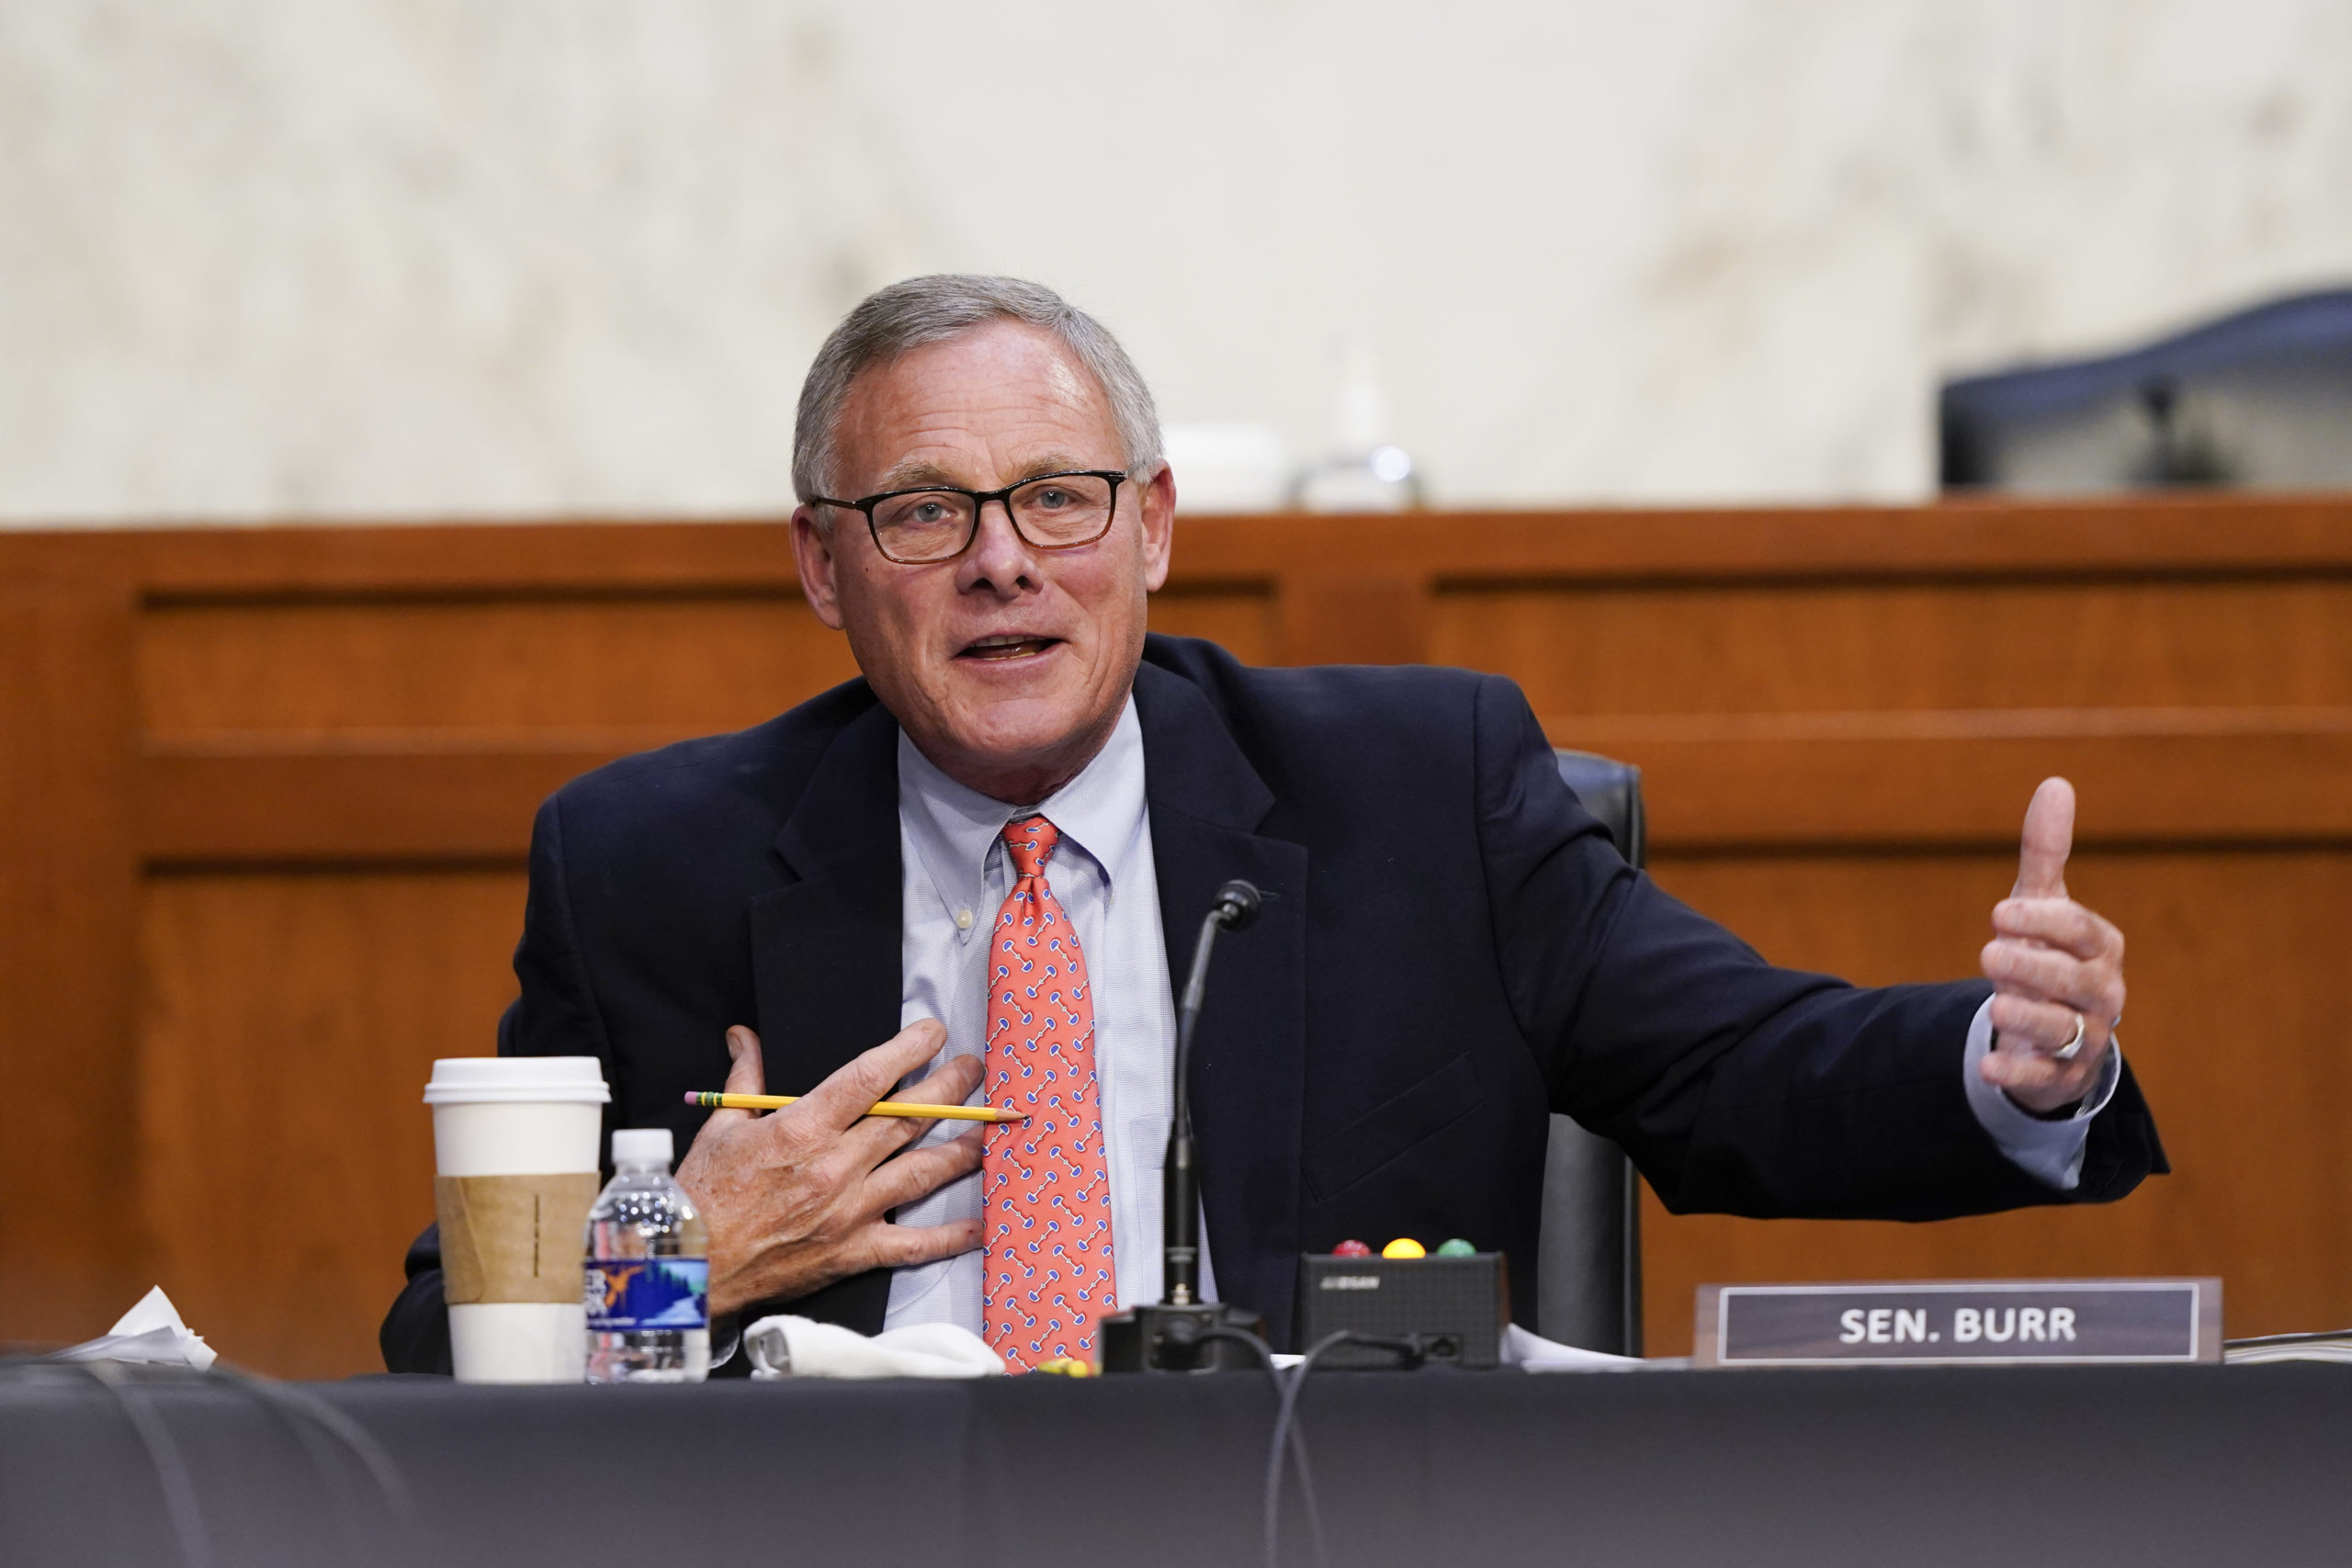 Ranking Member Richard Burr speaks during a Senate Health, Education, Labor and Pensions Committee hearing on Thursday in Washington, D.C. (Susan Walsh/Pool/Getty Images)